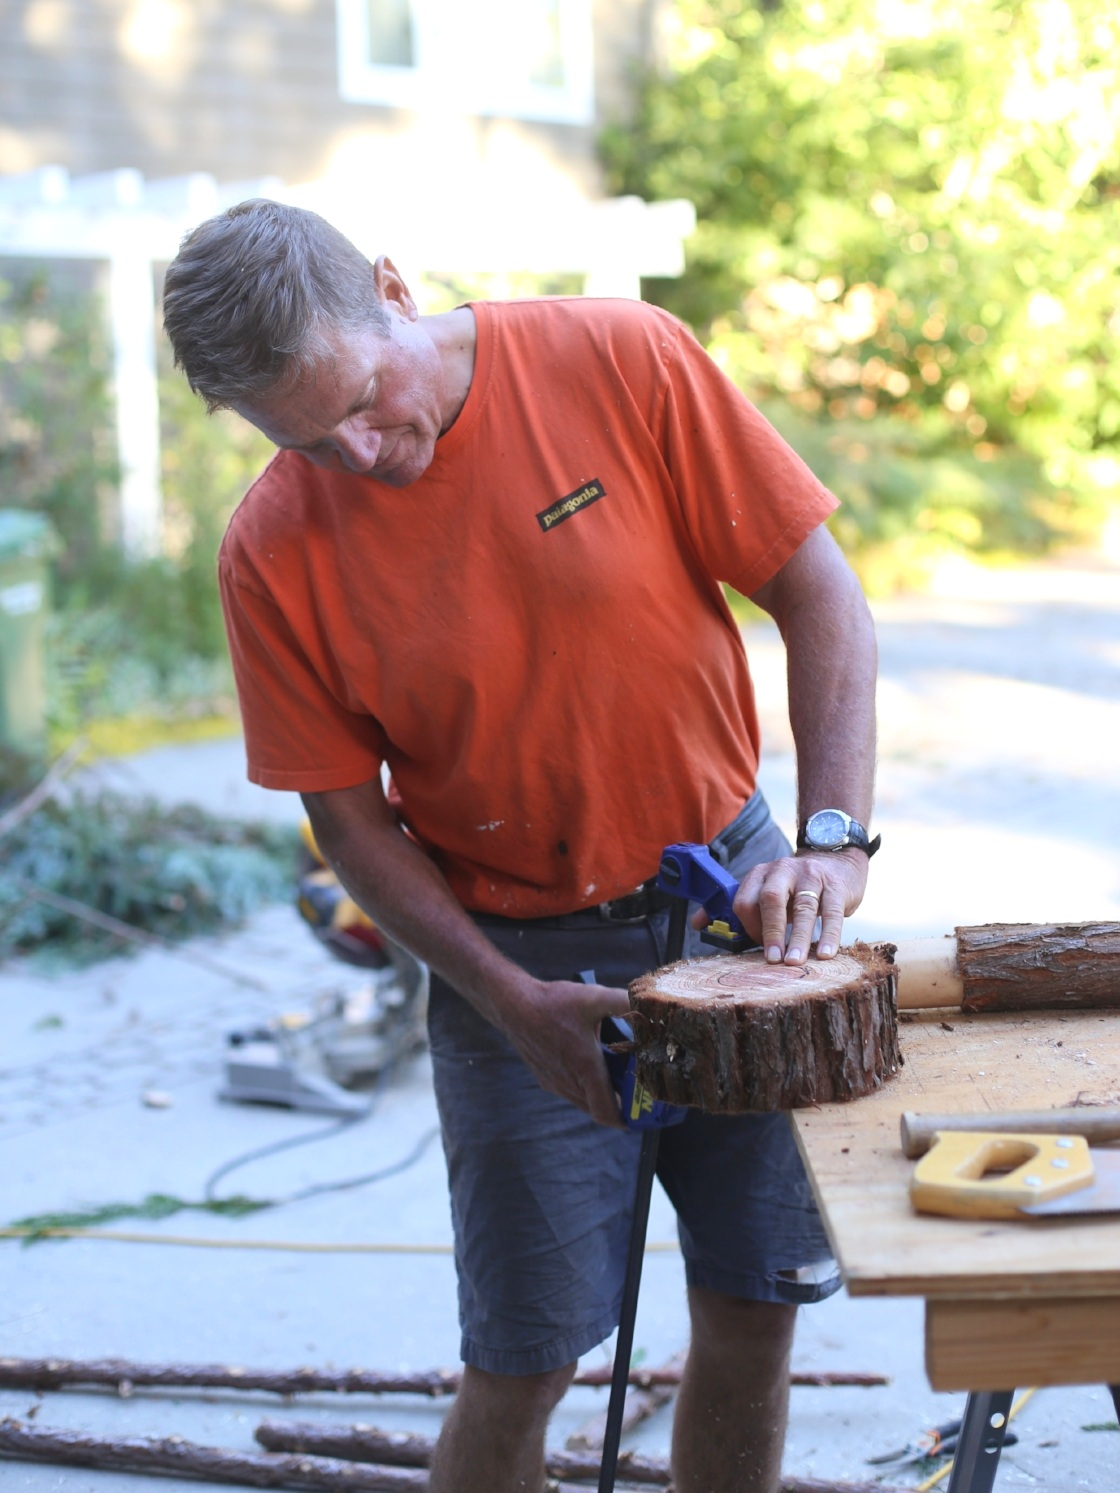 Dyana, her husband Dean, and their four children have made Scotts Valley home for 26 years. Dean often lends a hand with carpentry and large installations.